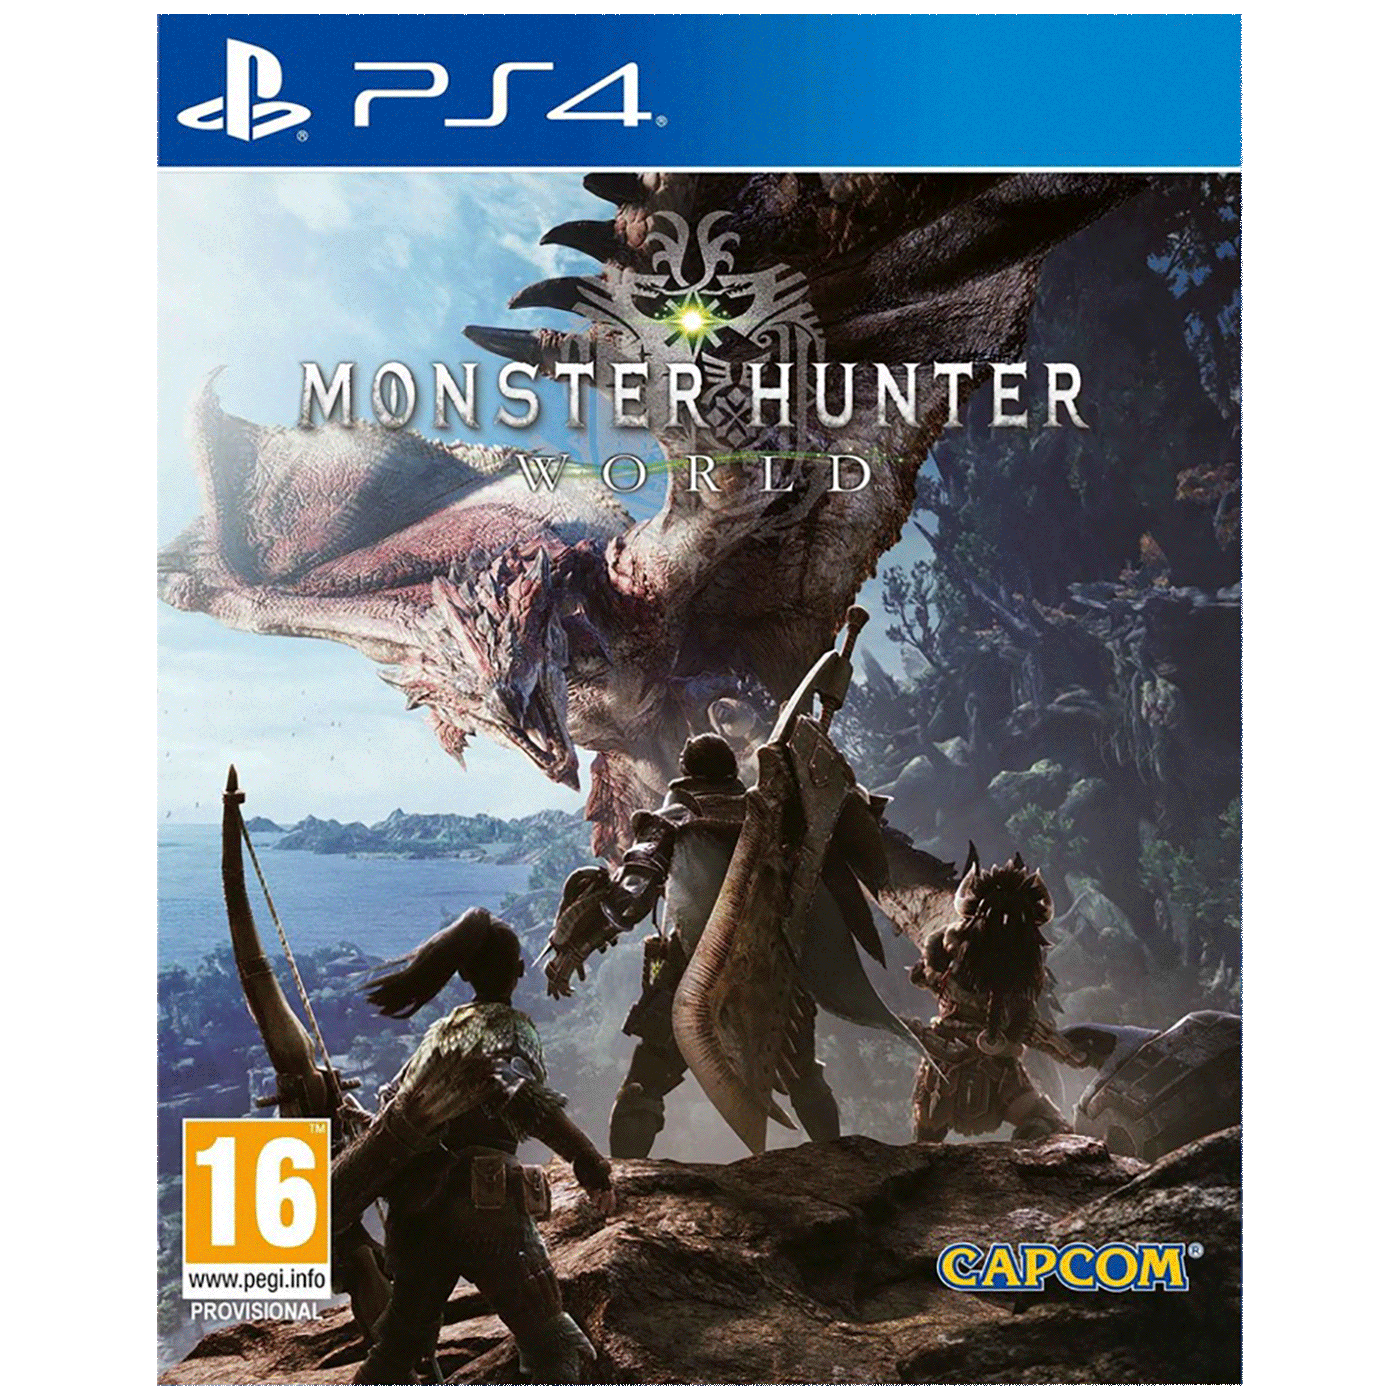 Monster Hunter World SE